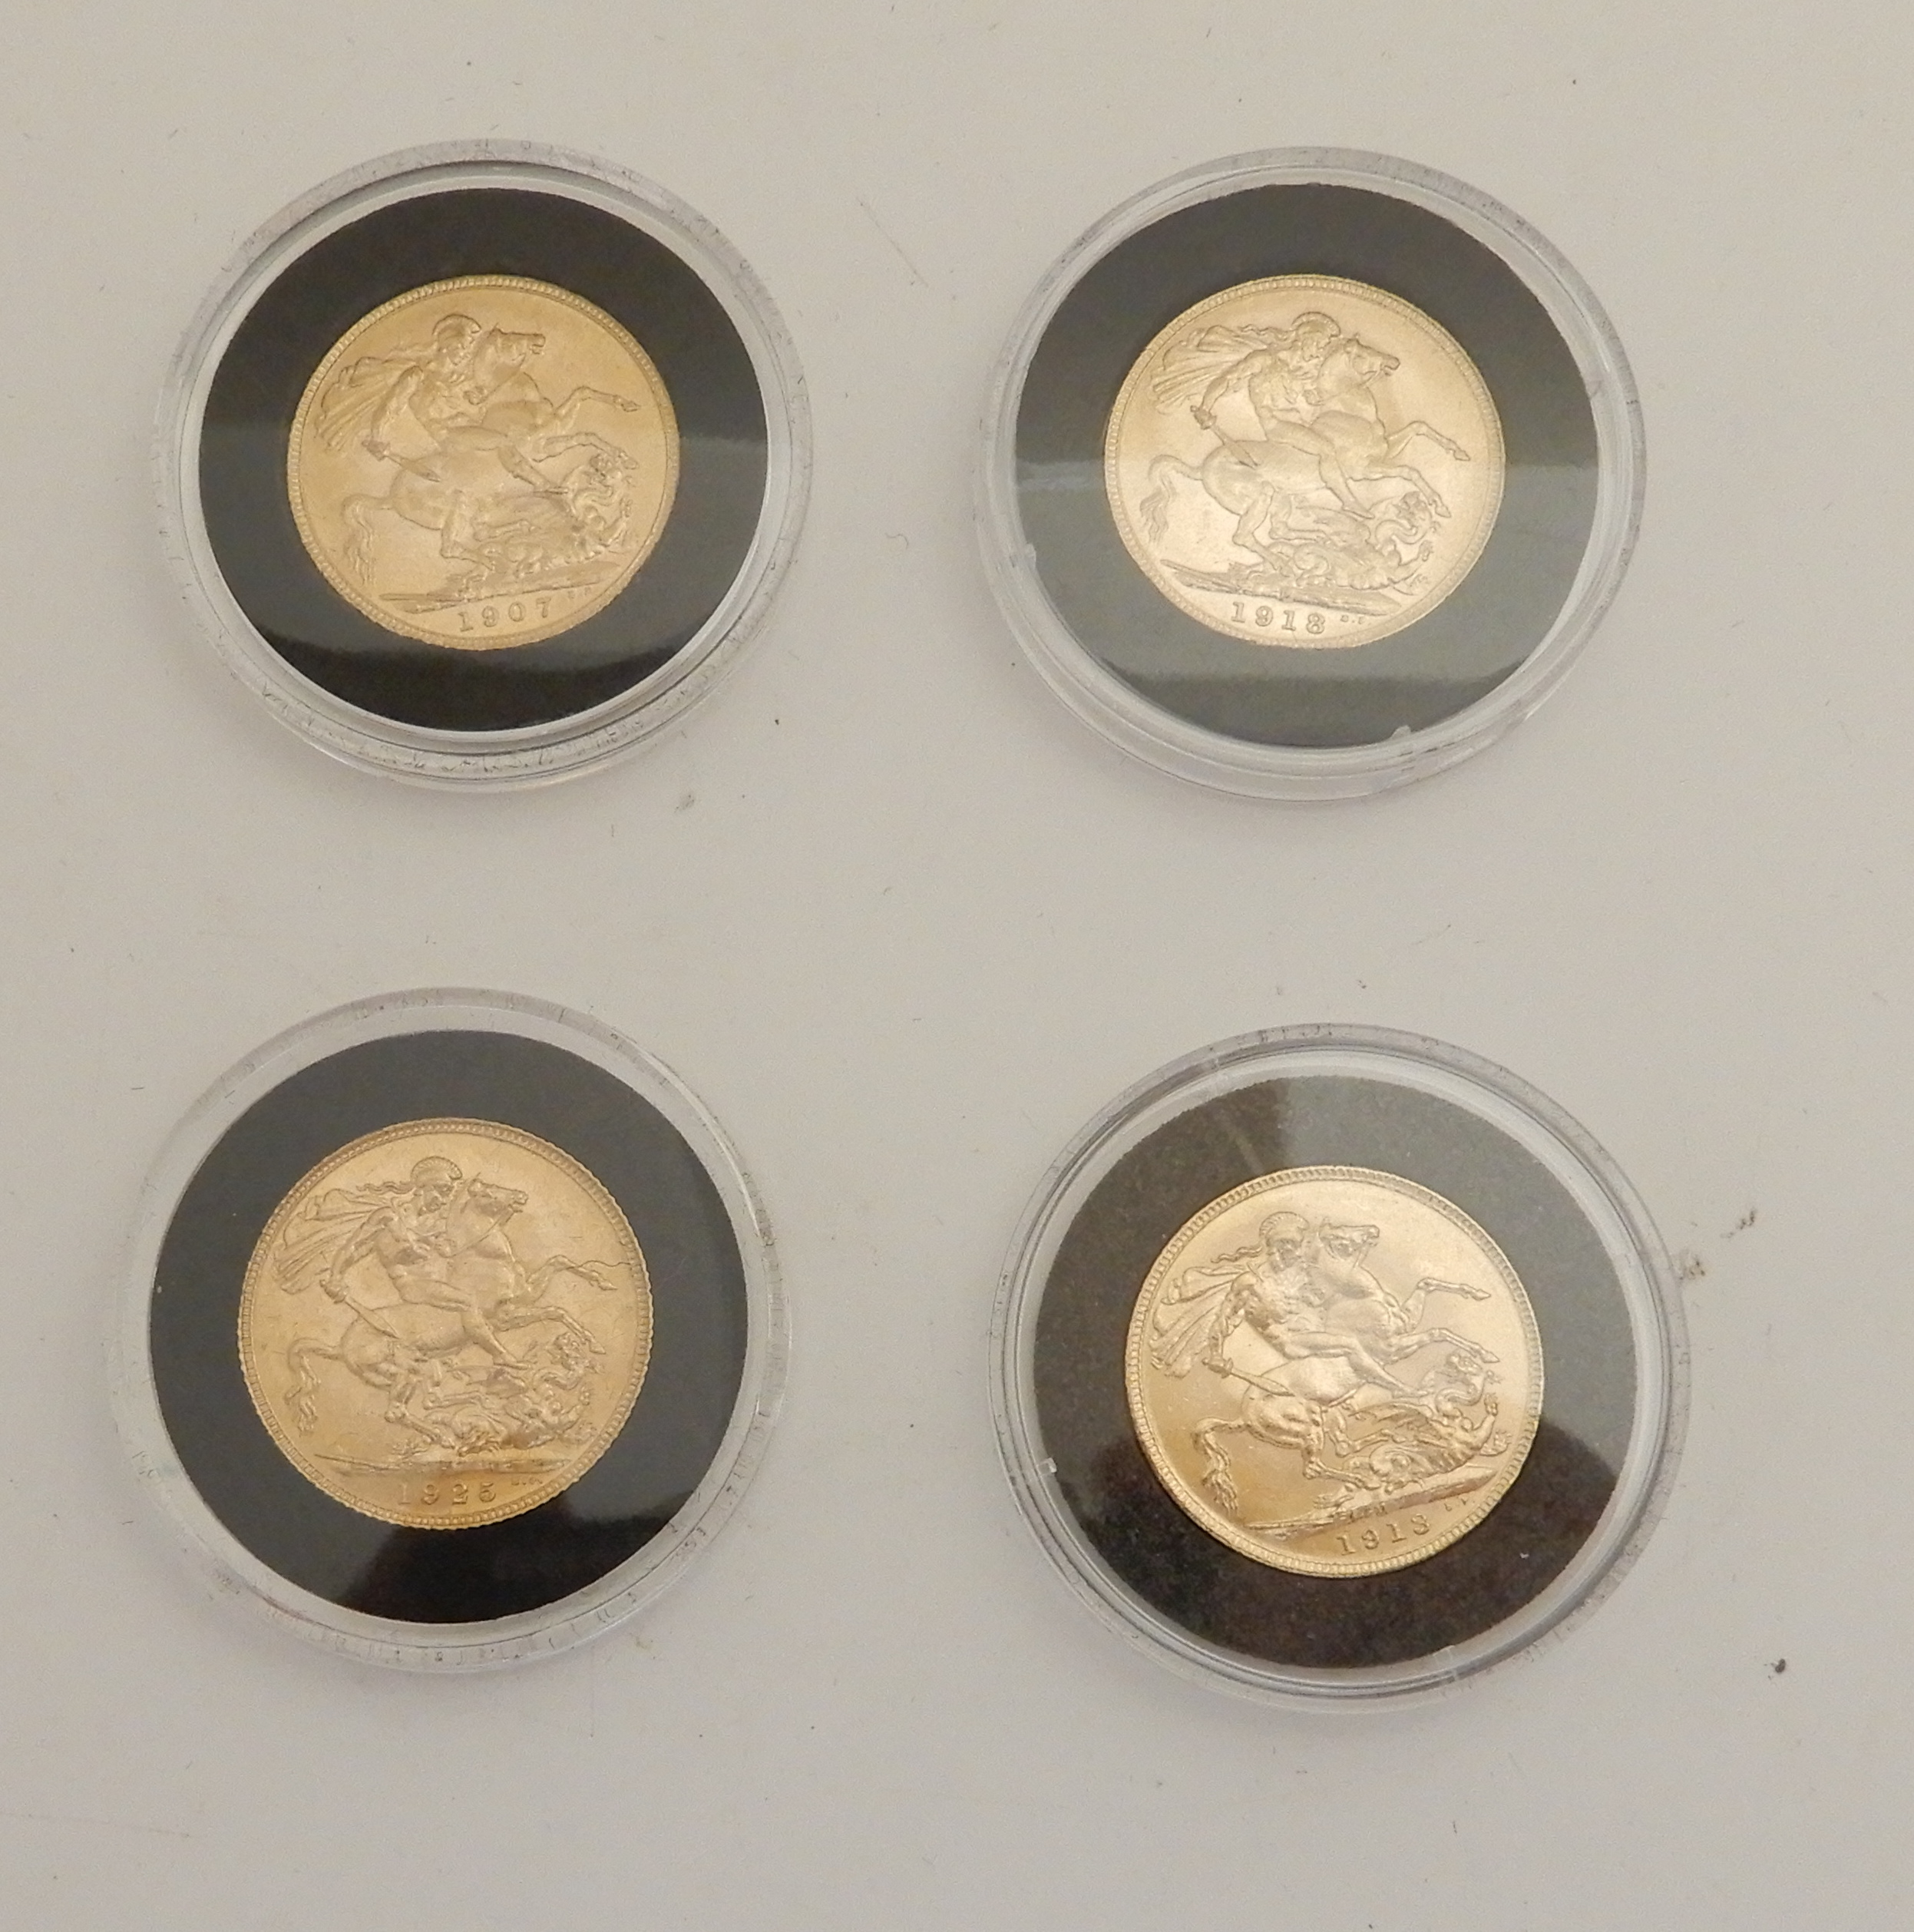 Lot 198 - AN EDWARD VII GOLD FULL SOVEREIGN, 1907 with three George V gold full sovereigns, 1913, 1918 and